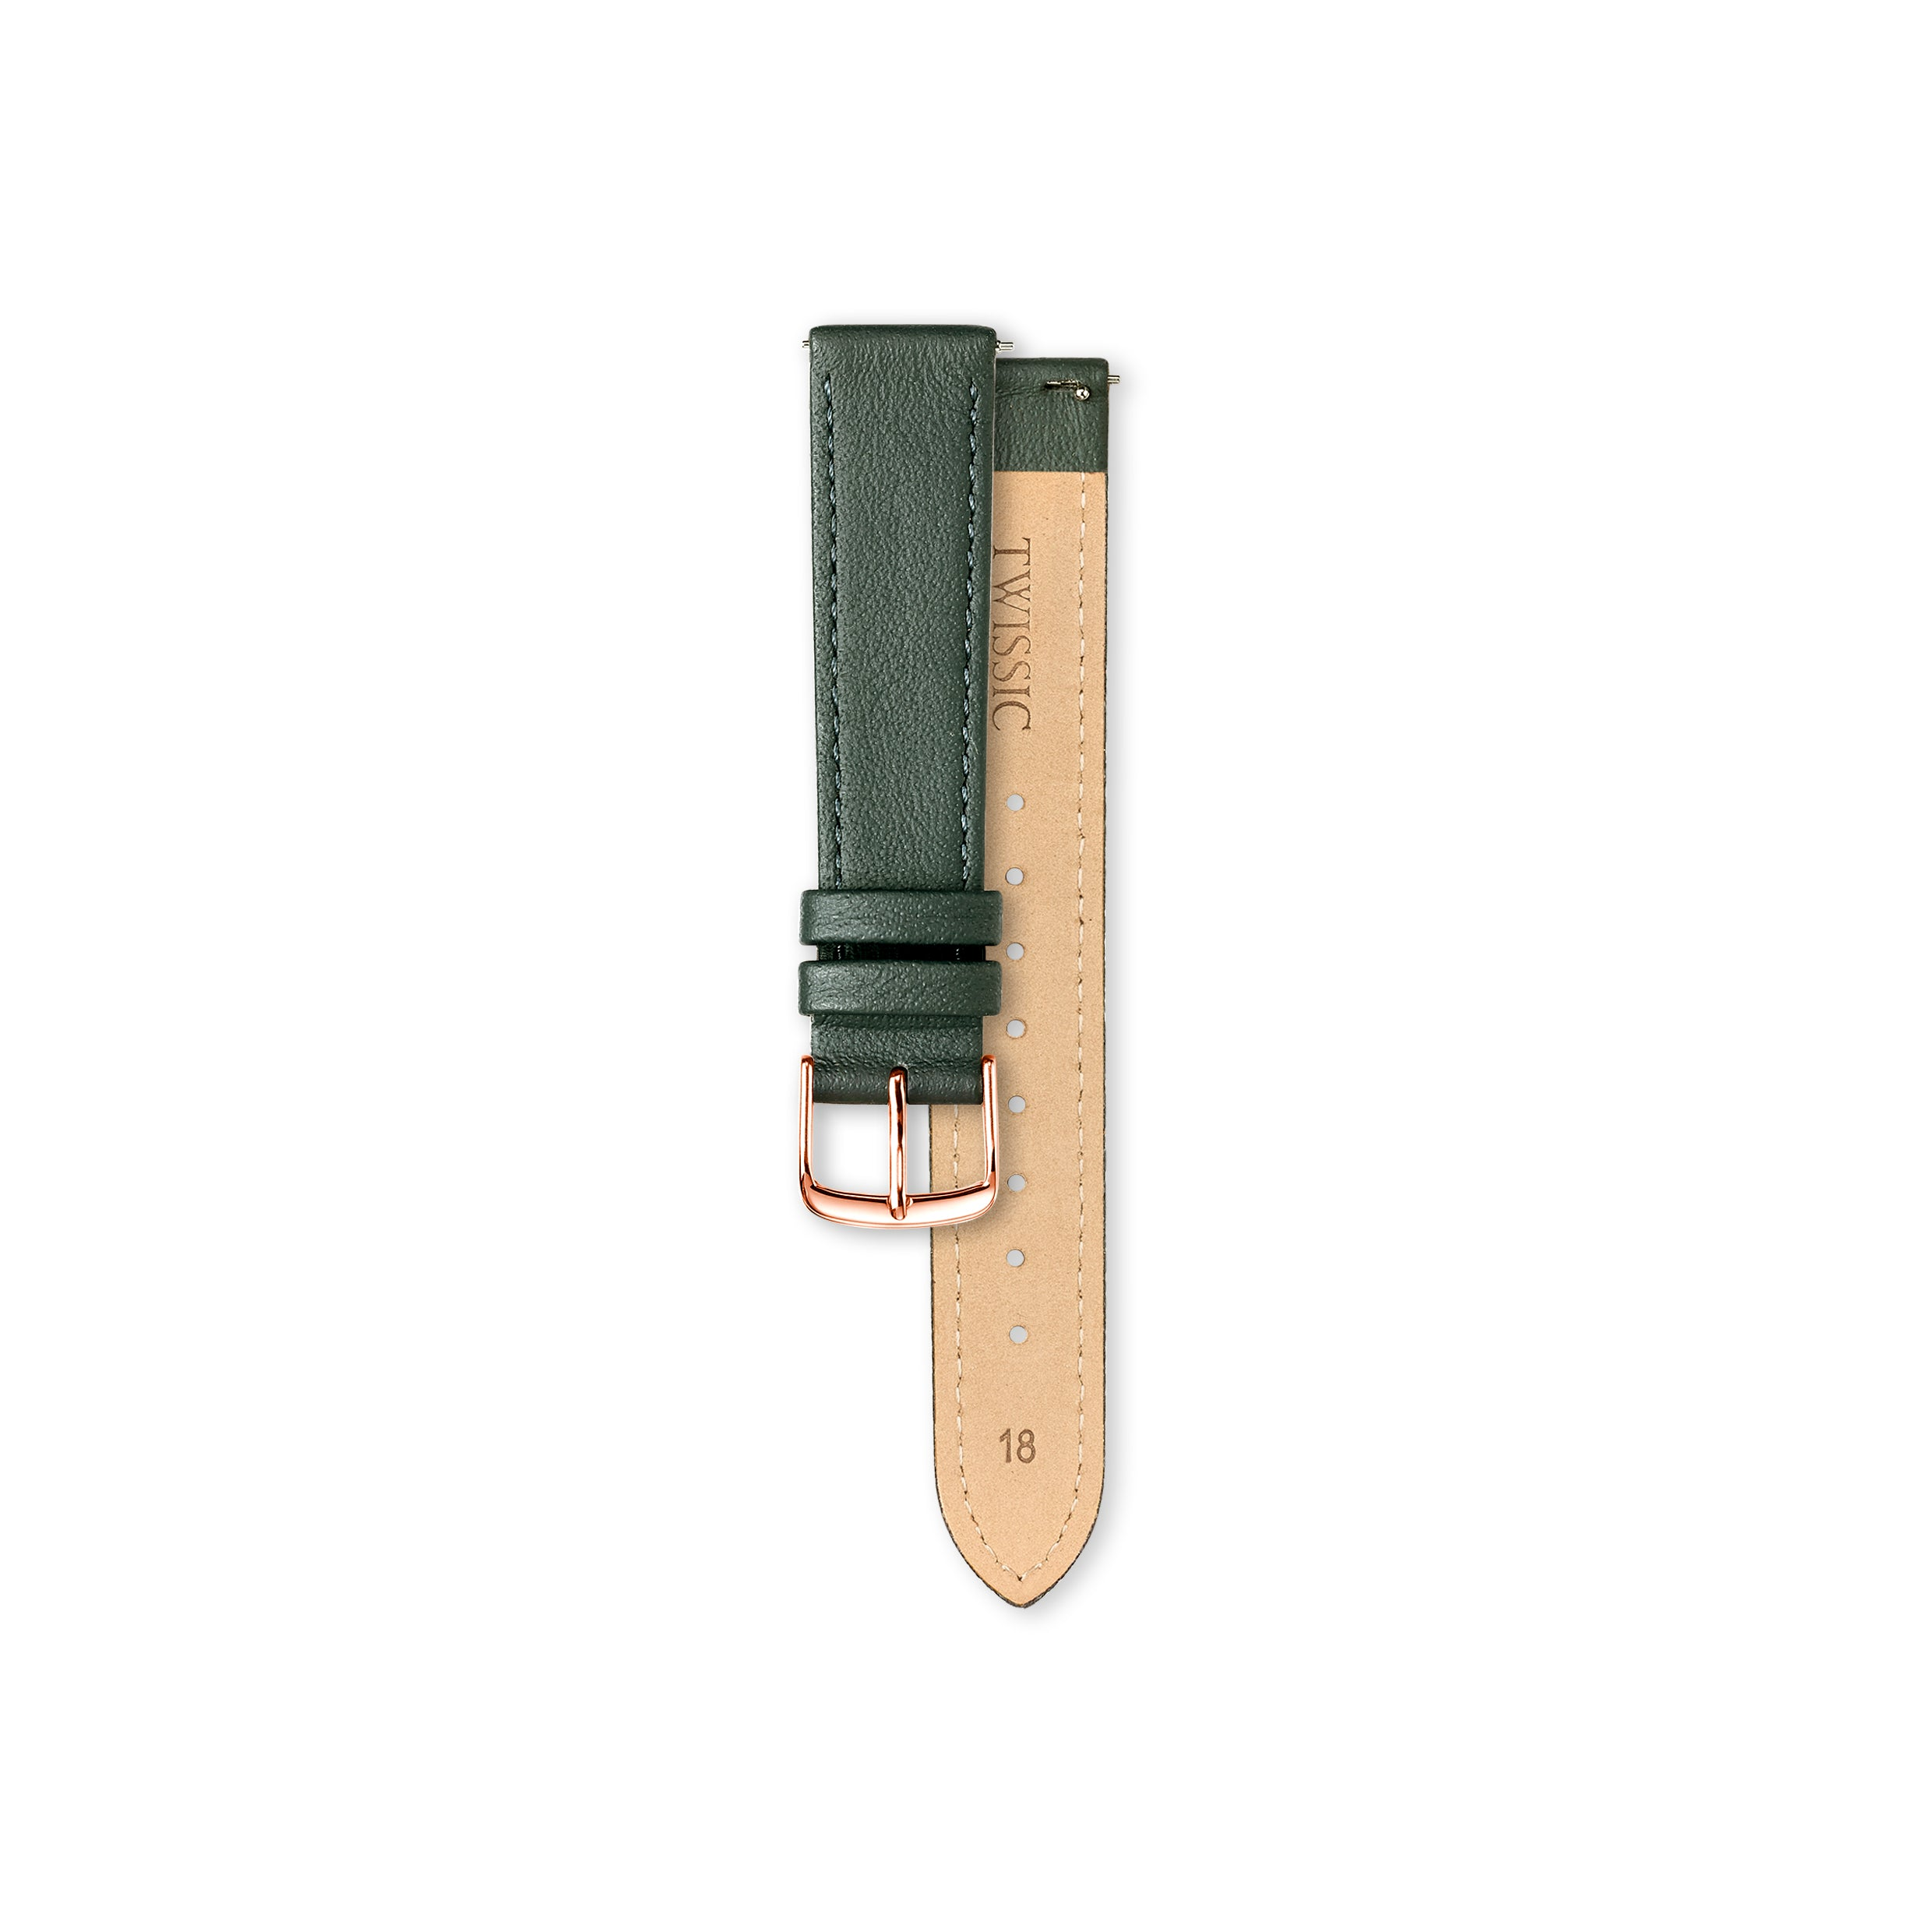 Christmas gift set Medium (34mm/18mm) - Brick Red & Rifle Green Straps